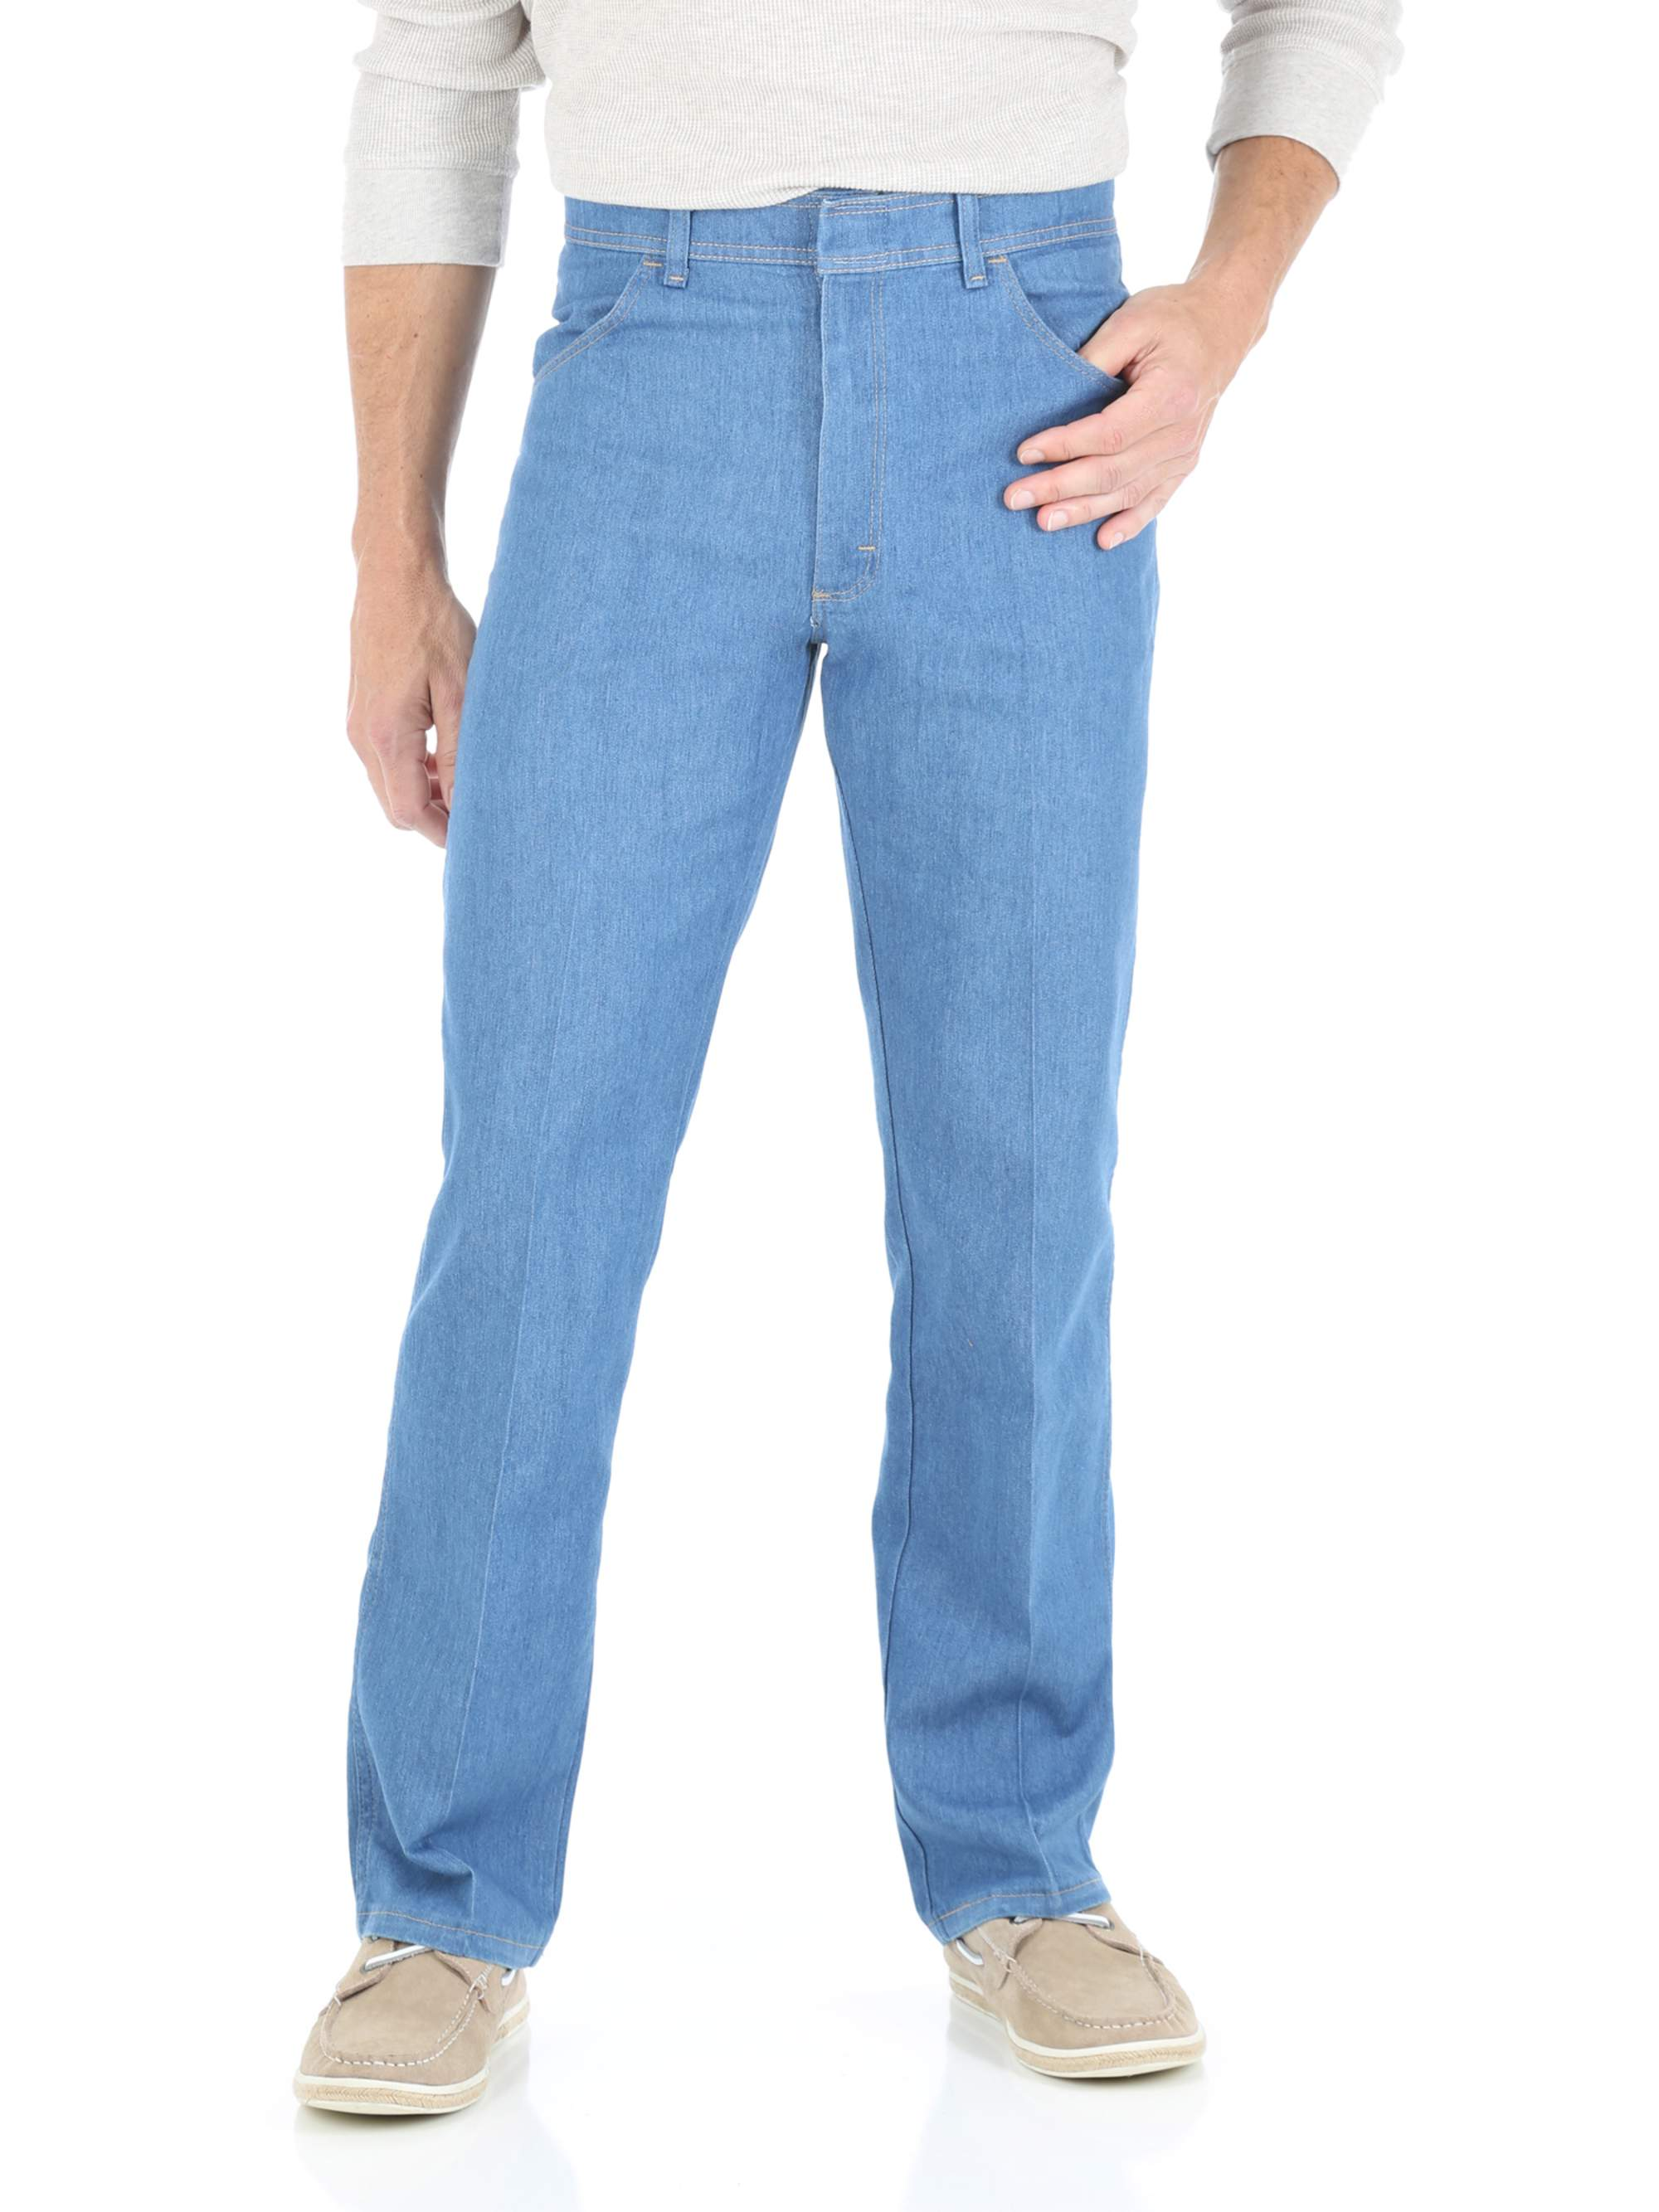 Hero - Men's Stretch Jeans with Flex-Fit Waist